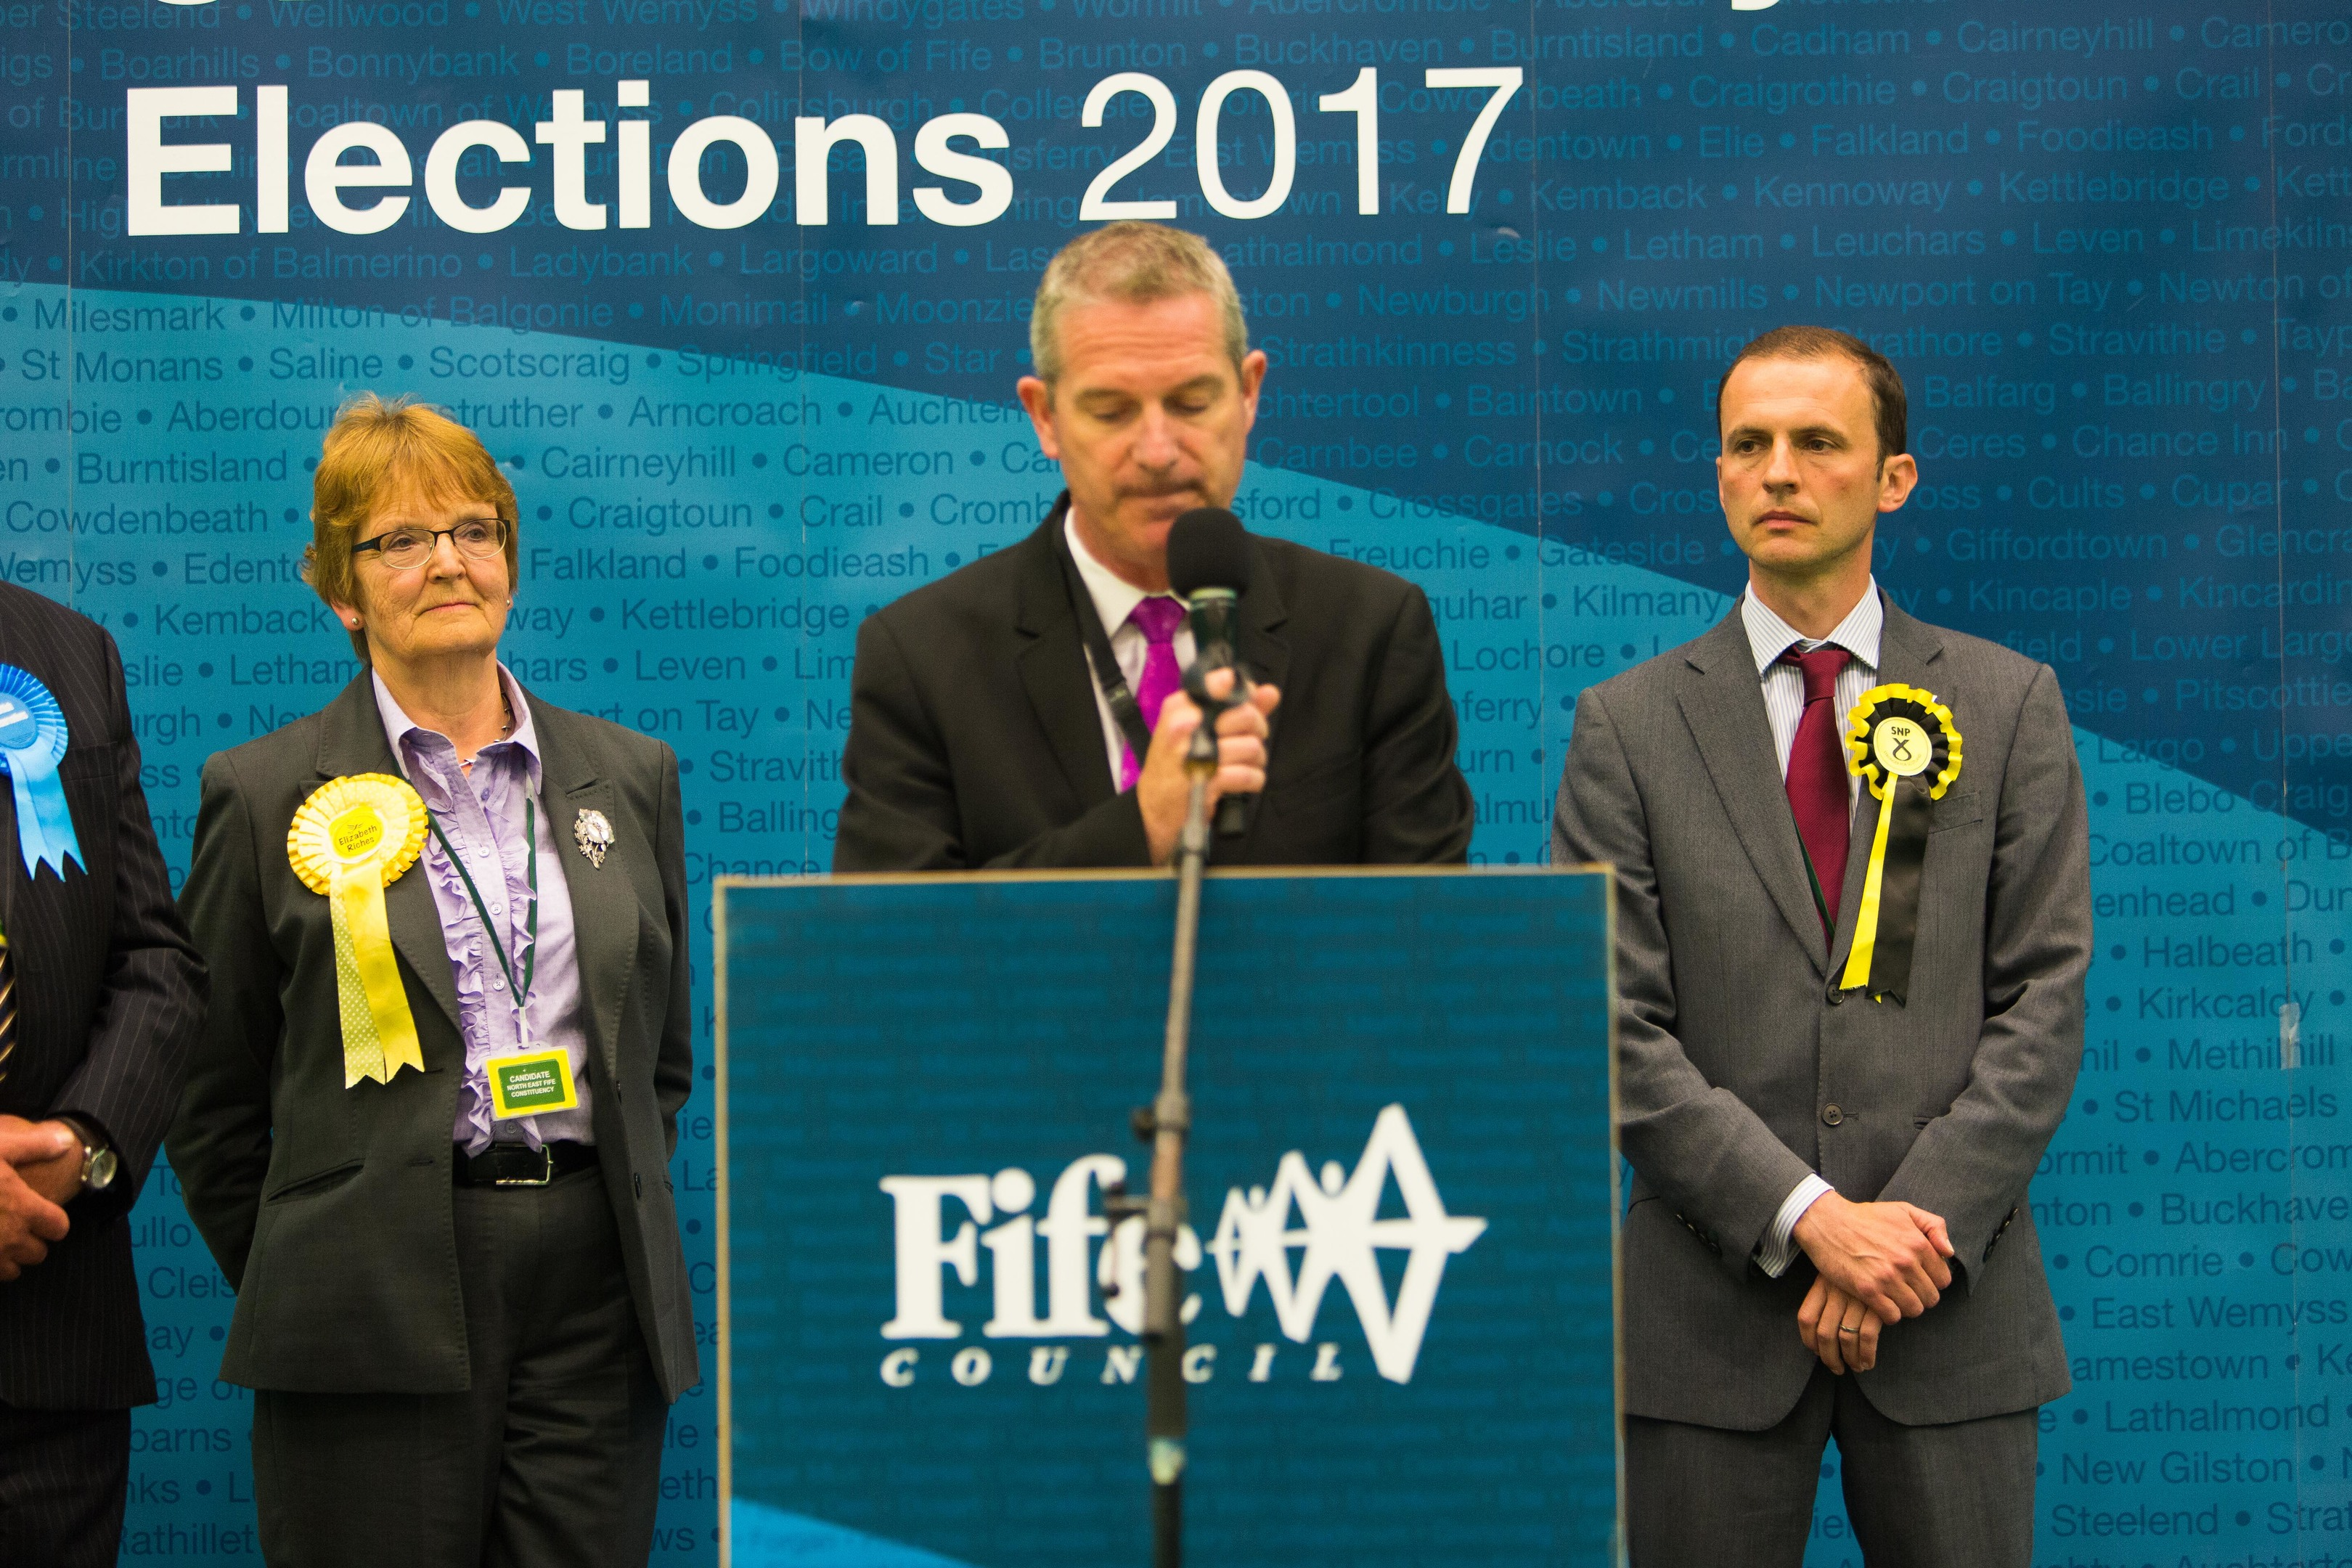 The result in North East Fife will be remembered for a long time.